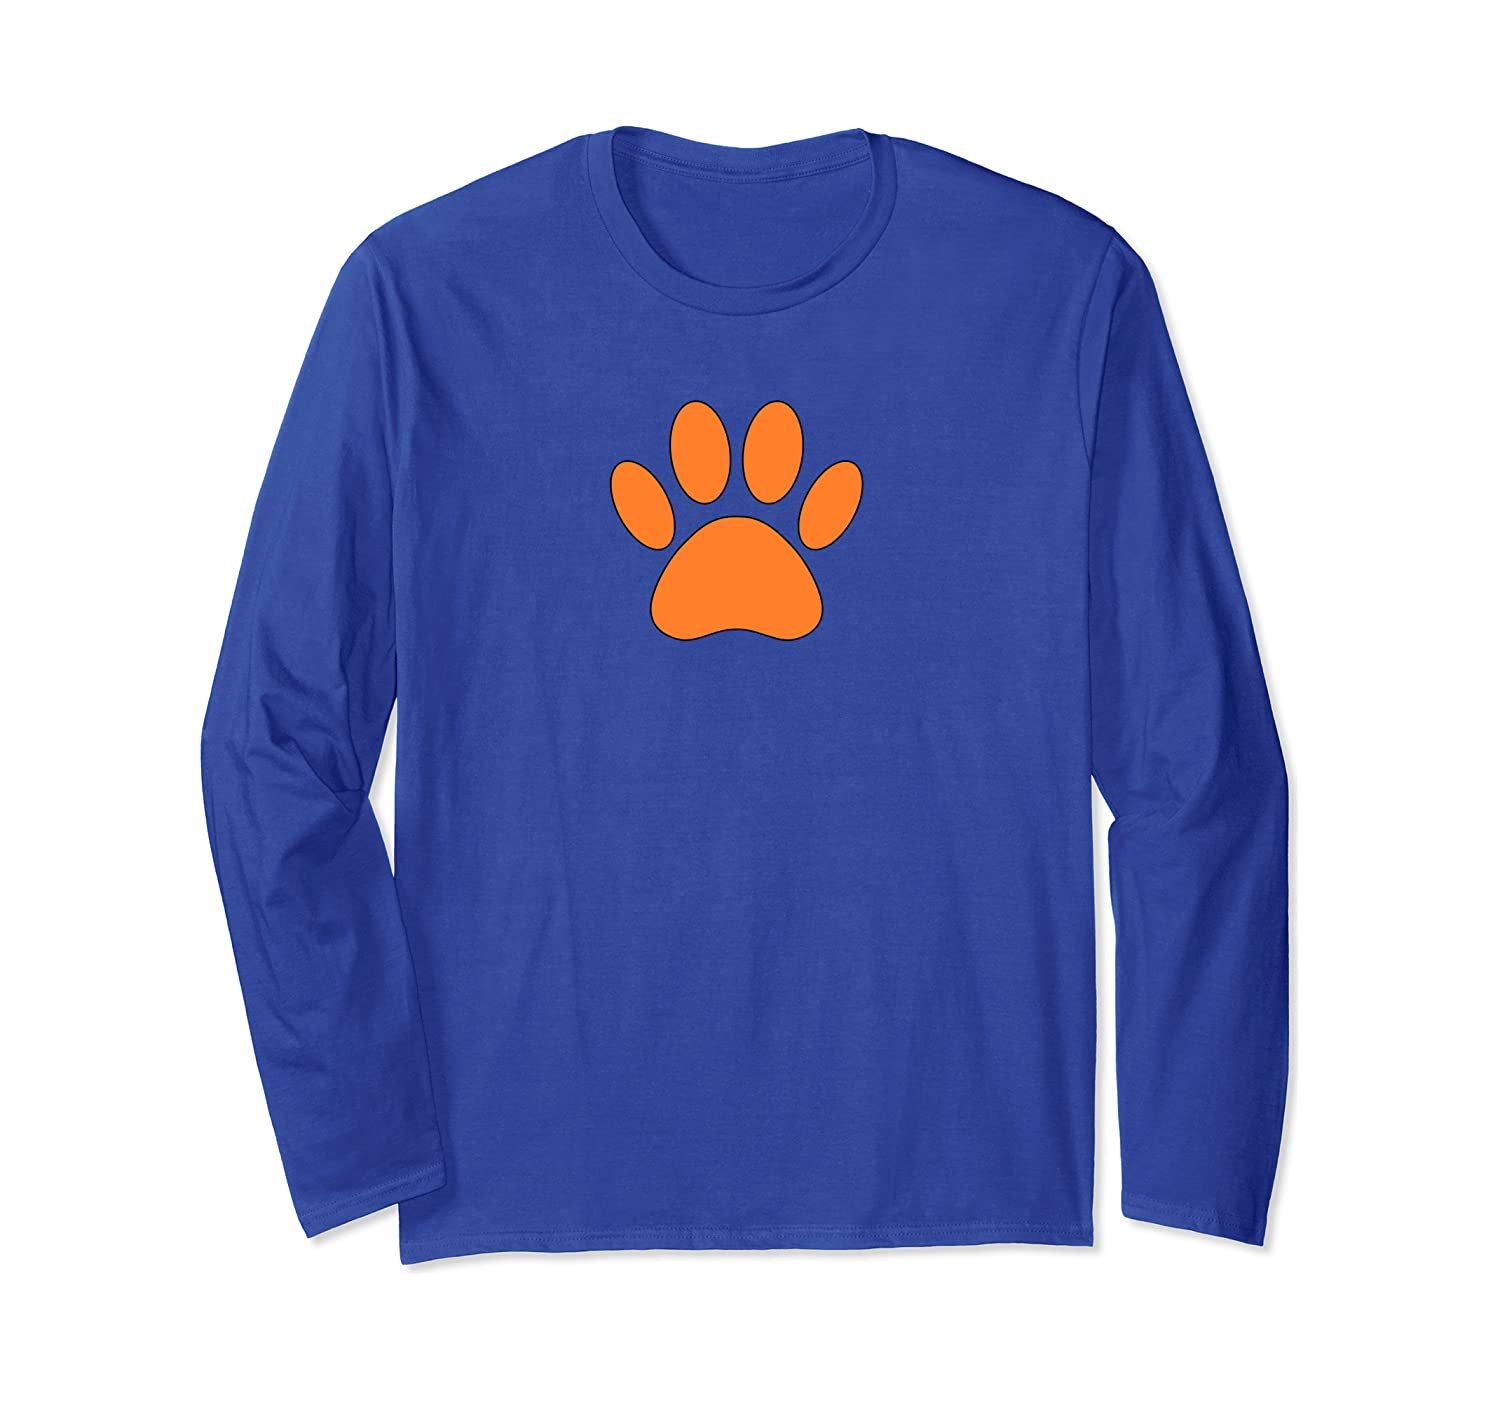 Orange Dog Paw Print Long Sleeve T Shirt Amazon Co Uk Clothing Here you can explore hq paw print transparent illustrations, icons and clipart with filter setting like size, type, color etc. amazon co uk